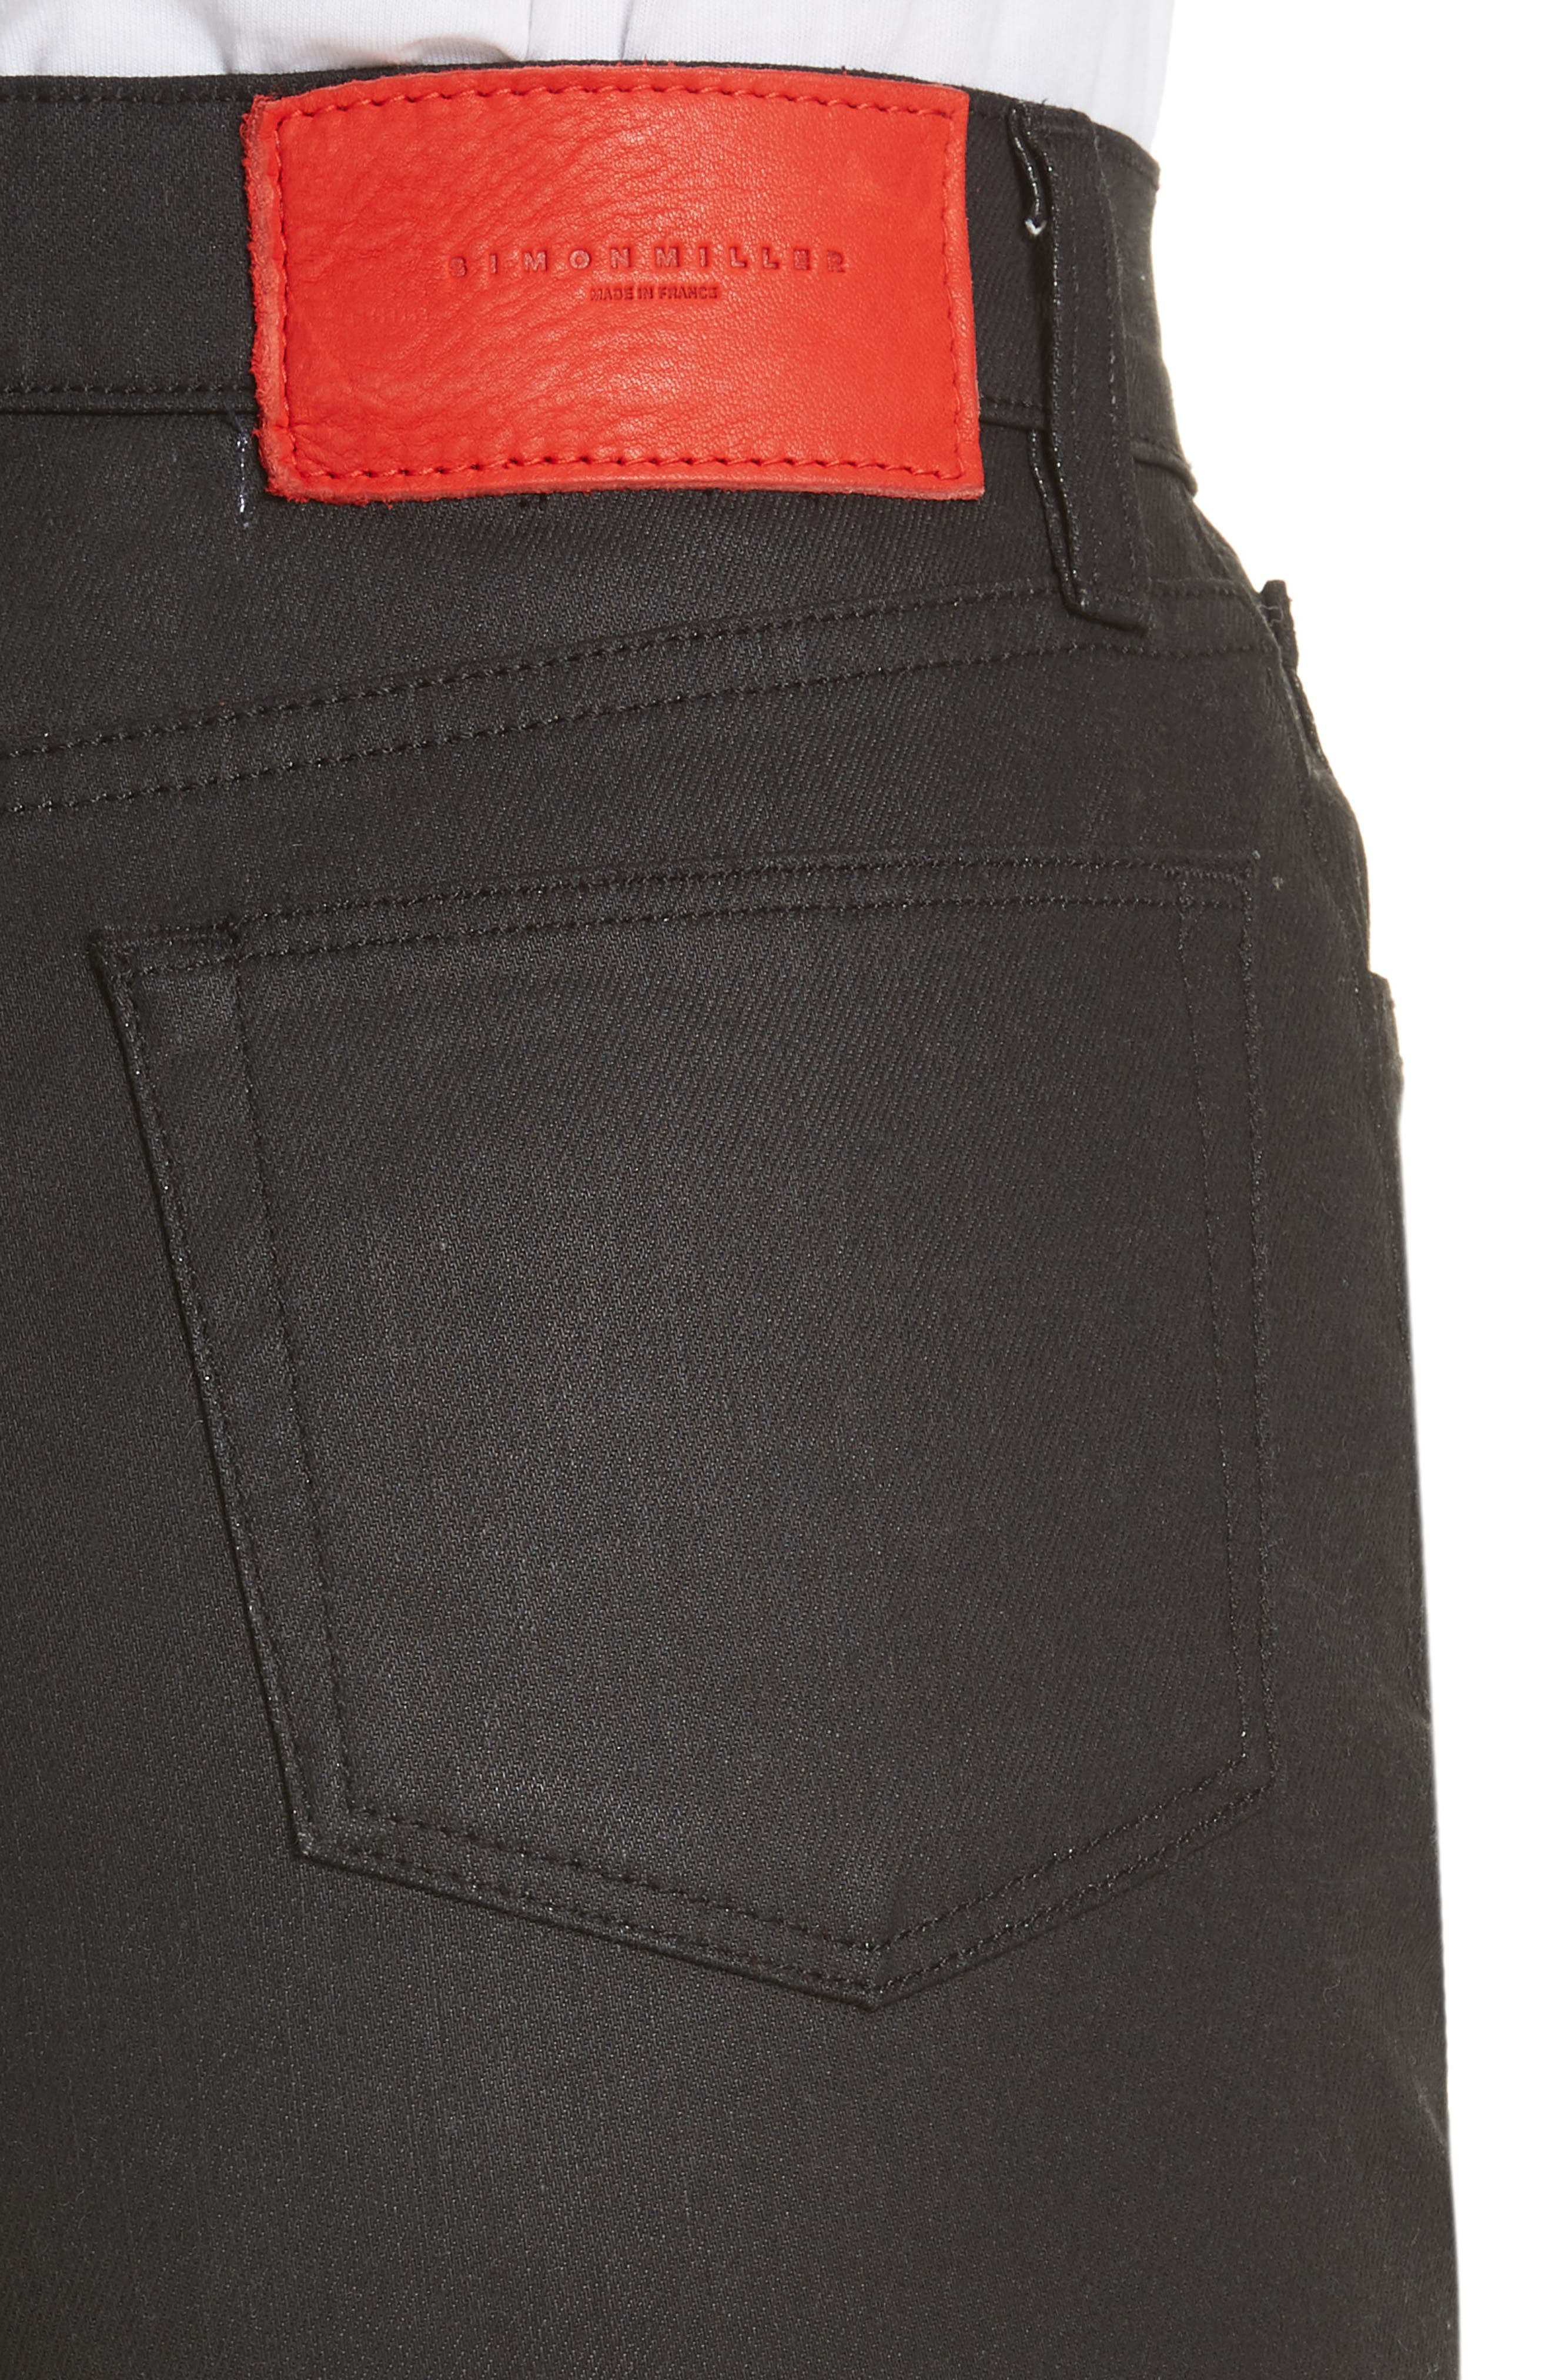 x Paramount Grease Coated Skinny Jeans,                             Alternate thumbnail 4, color,                             DANNY BLACK